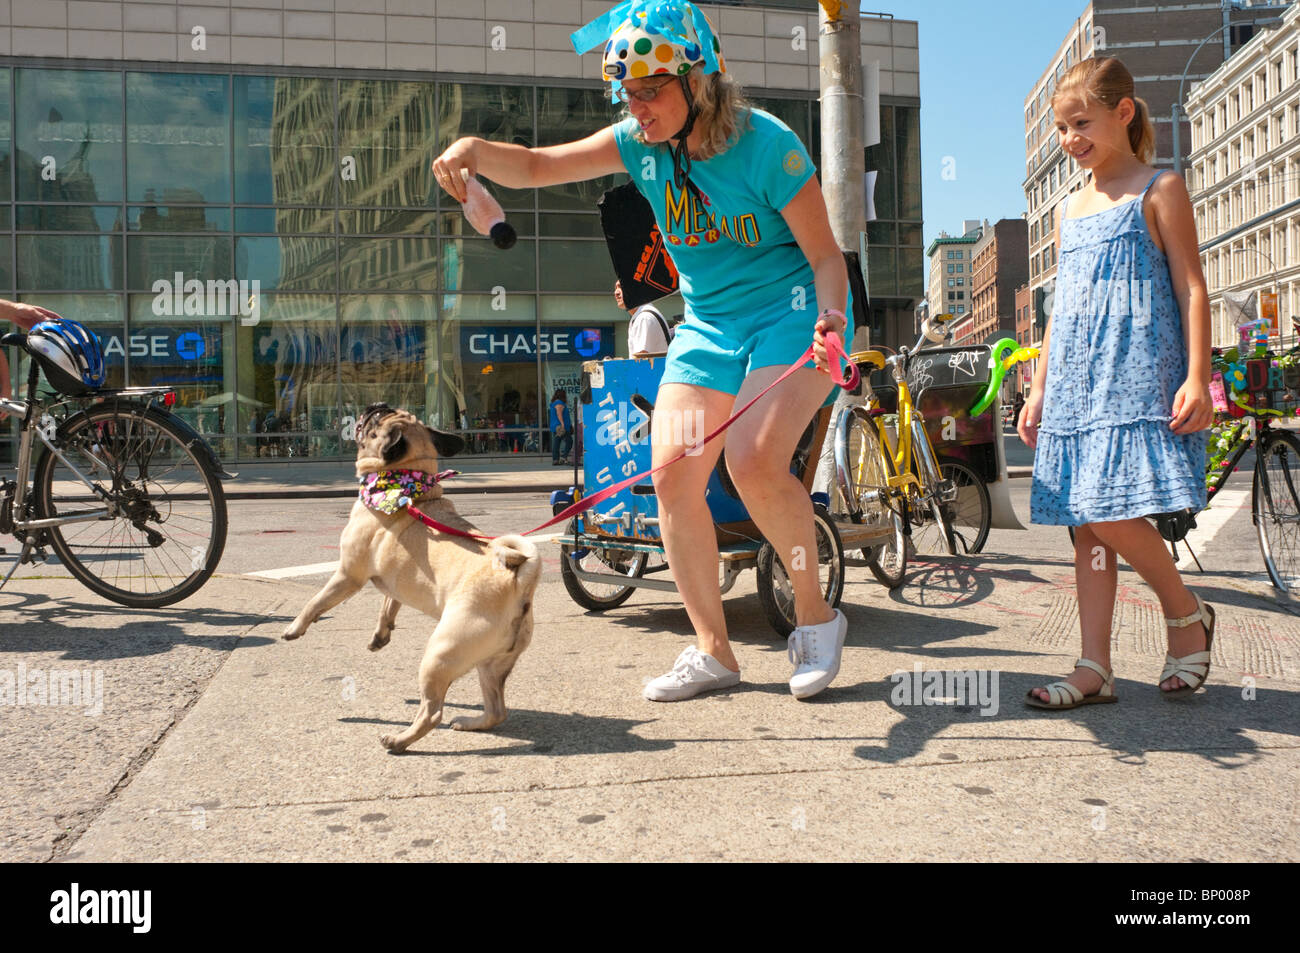 New York, NY - 7 August 2010- Olive the Pug and her guardian dance at the Times-Up space during Summer Streets. - Stock Image